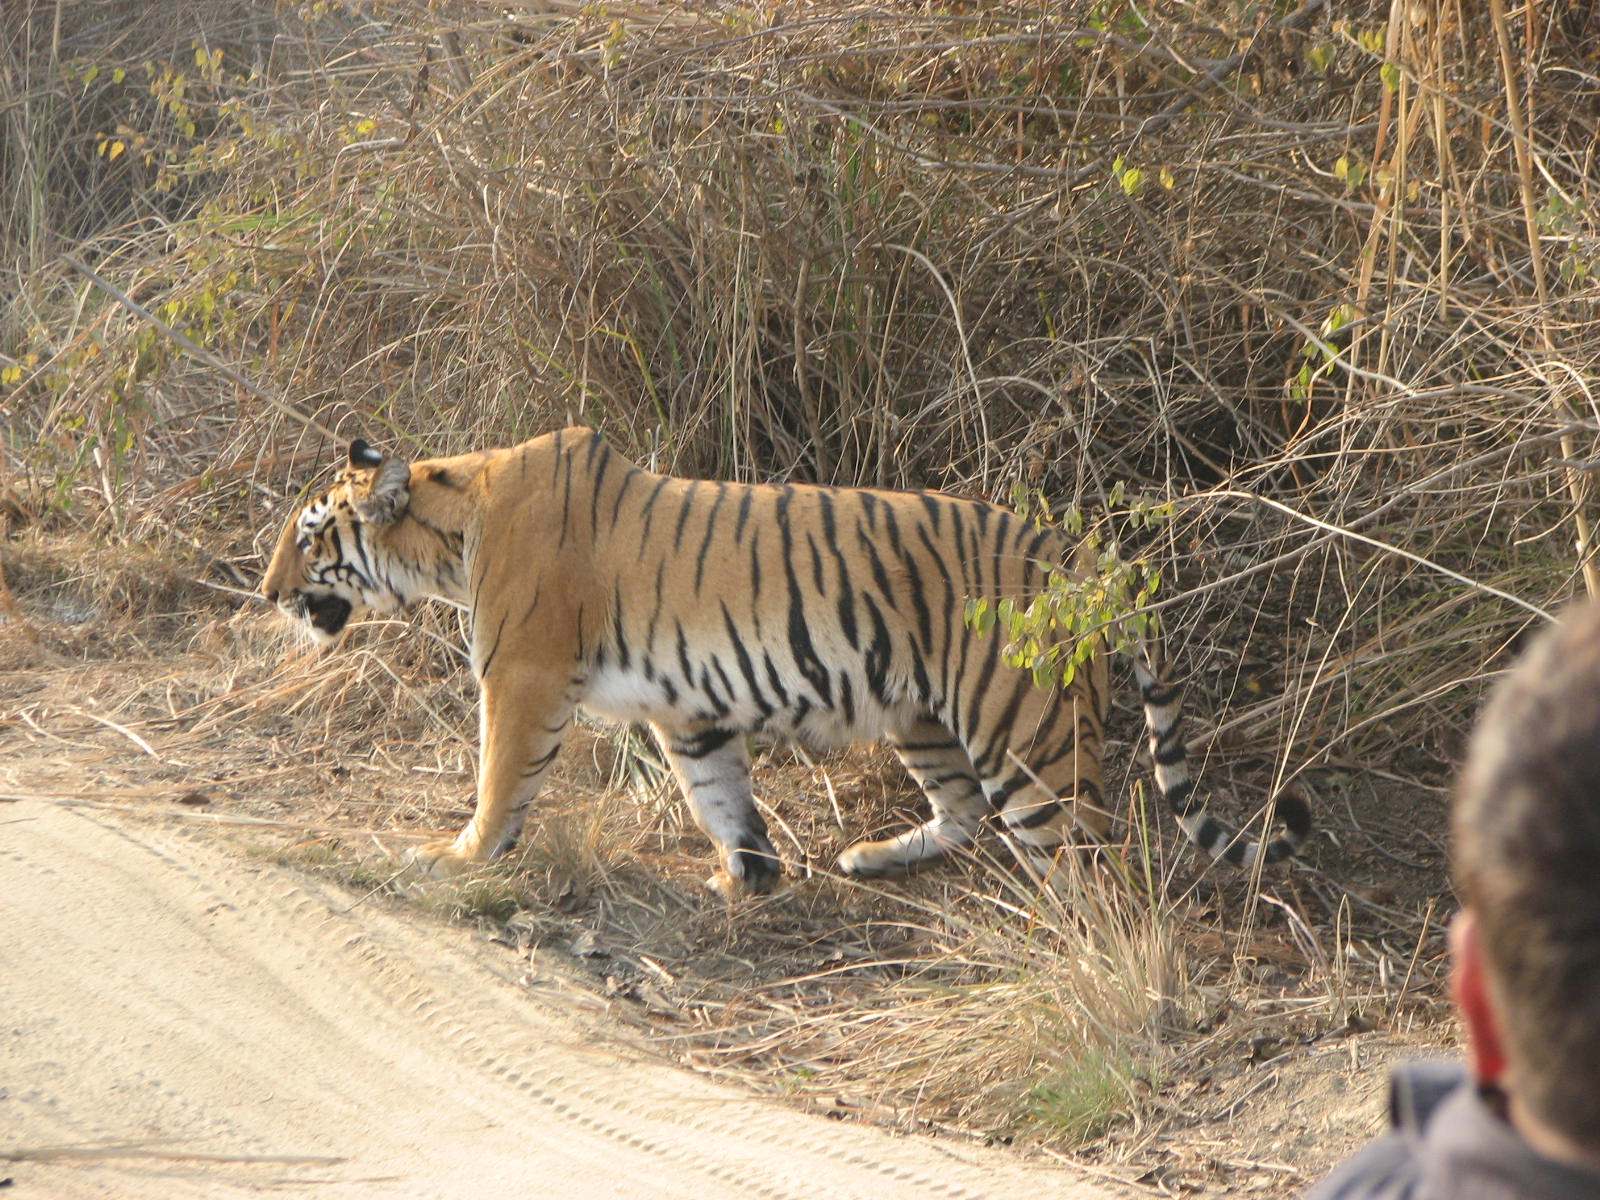 corbett tiger reserve Jim corbett national park was established in 1936, famous for tiger safaris it is best weekend getaway for families, friends, couples and corporate groups.